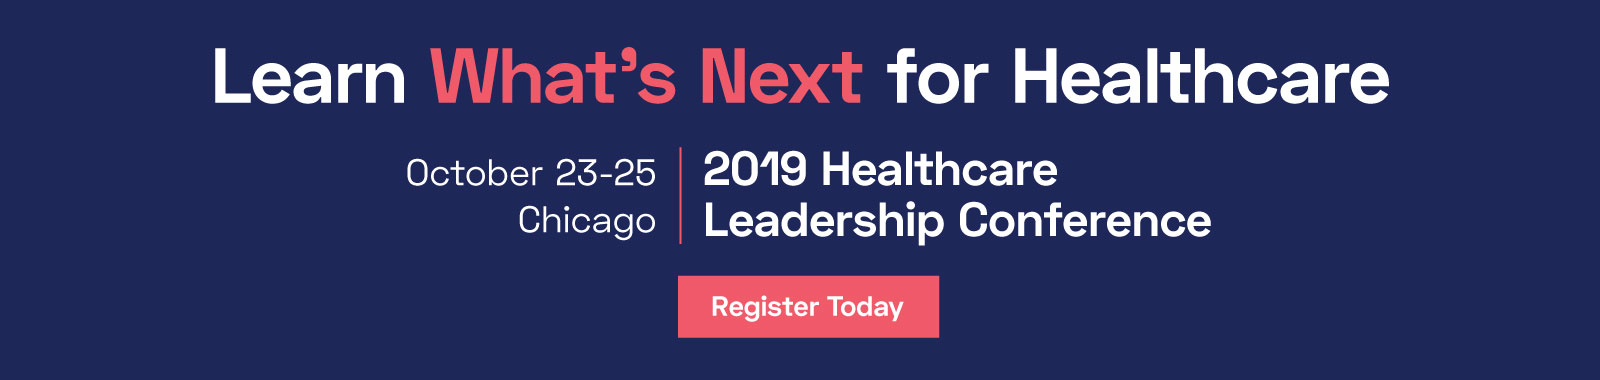 join us for healthcare leadership conference